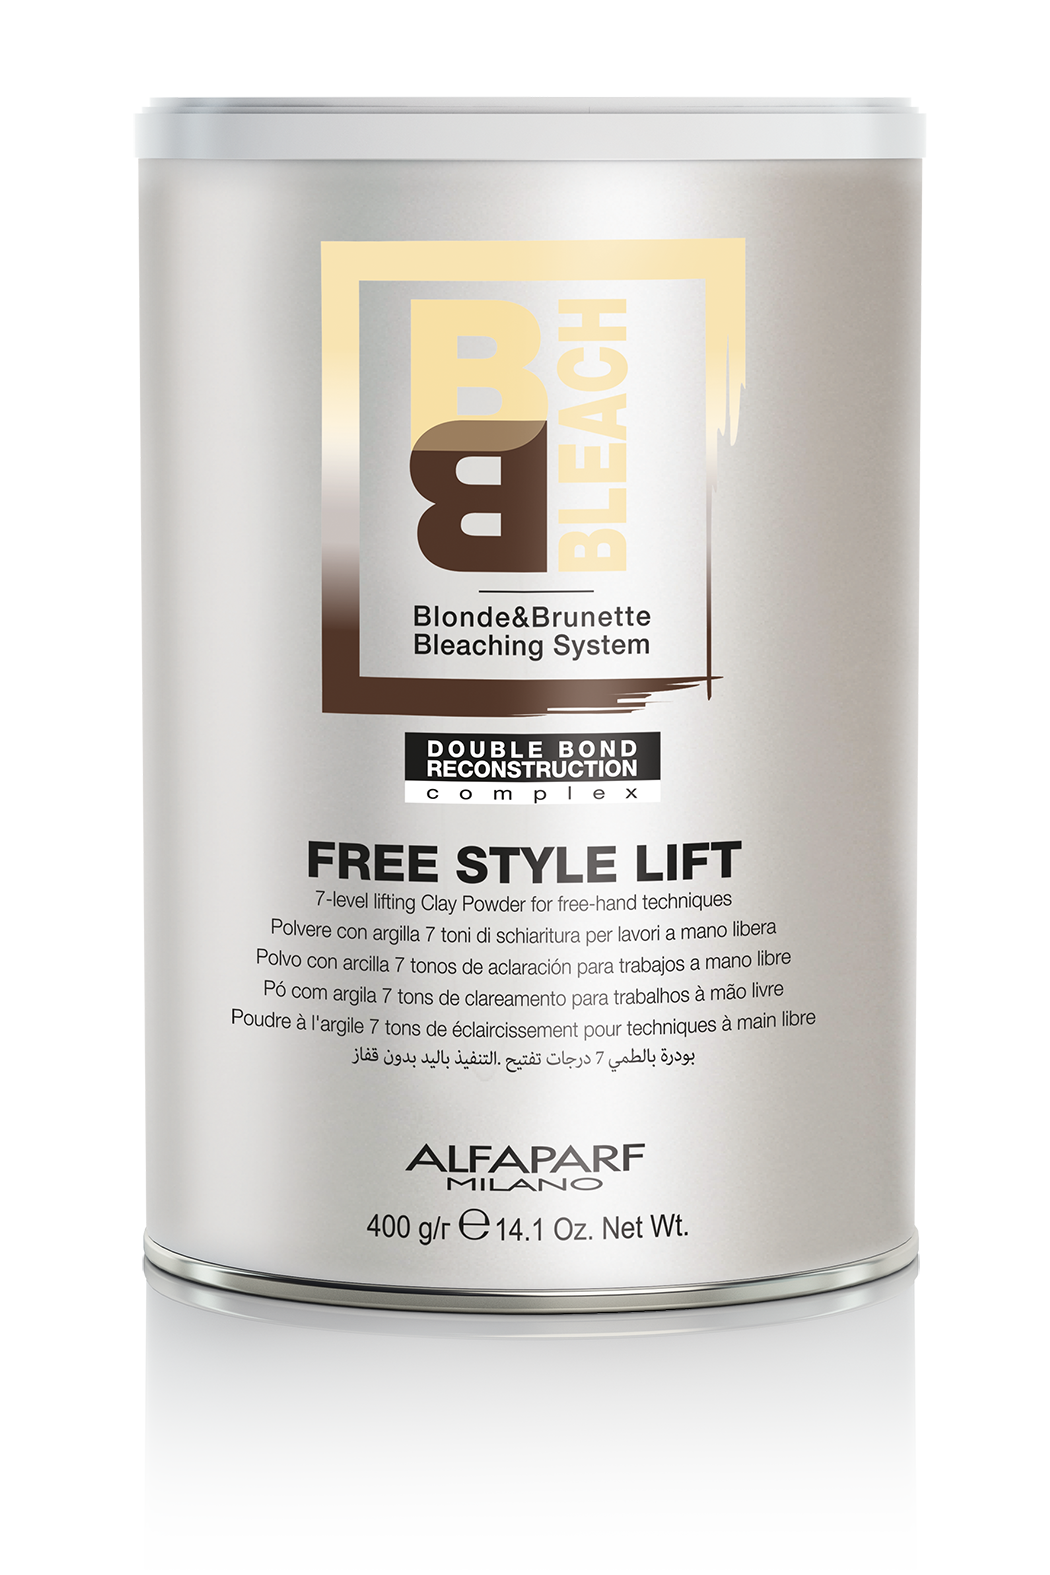 Brighten Up with Alfaparf's BB Bleach Free Style Lift